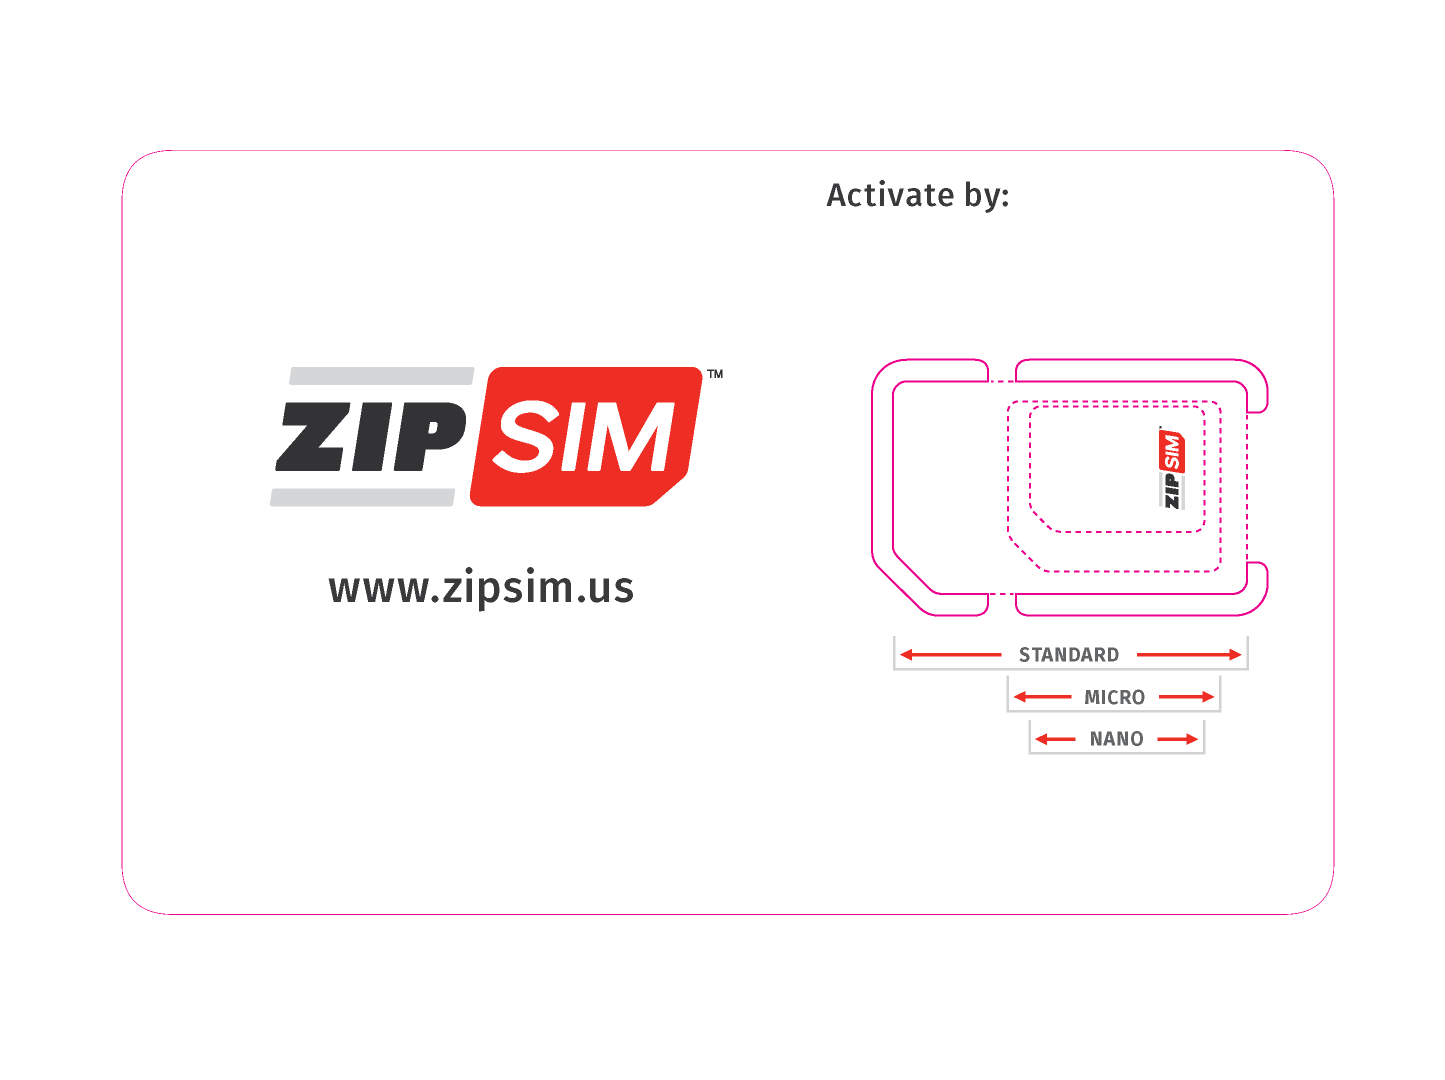 ZIP SIM sim card sizes